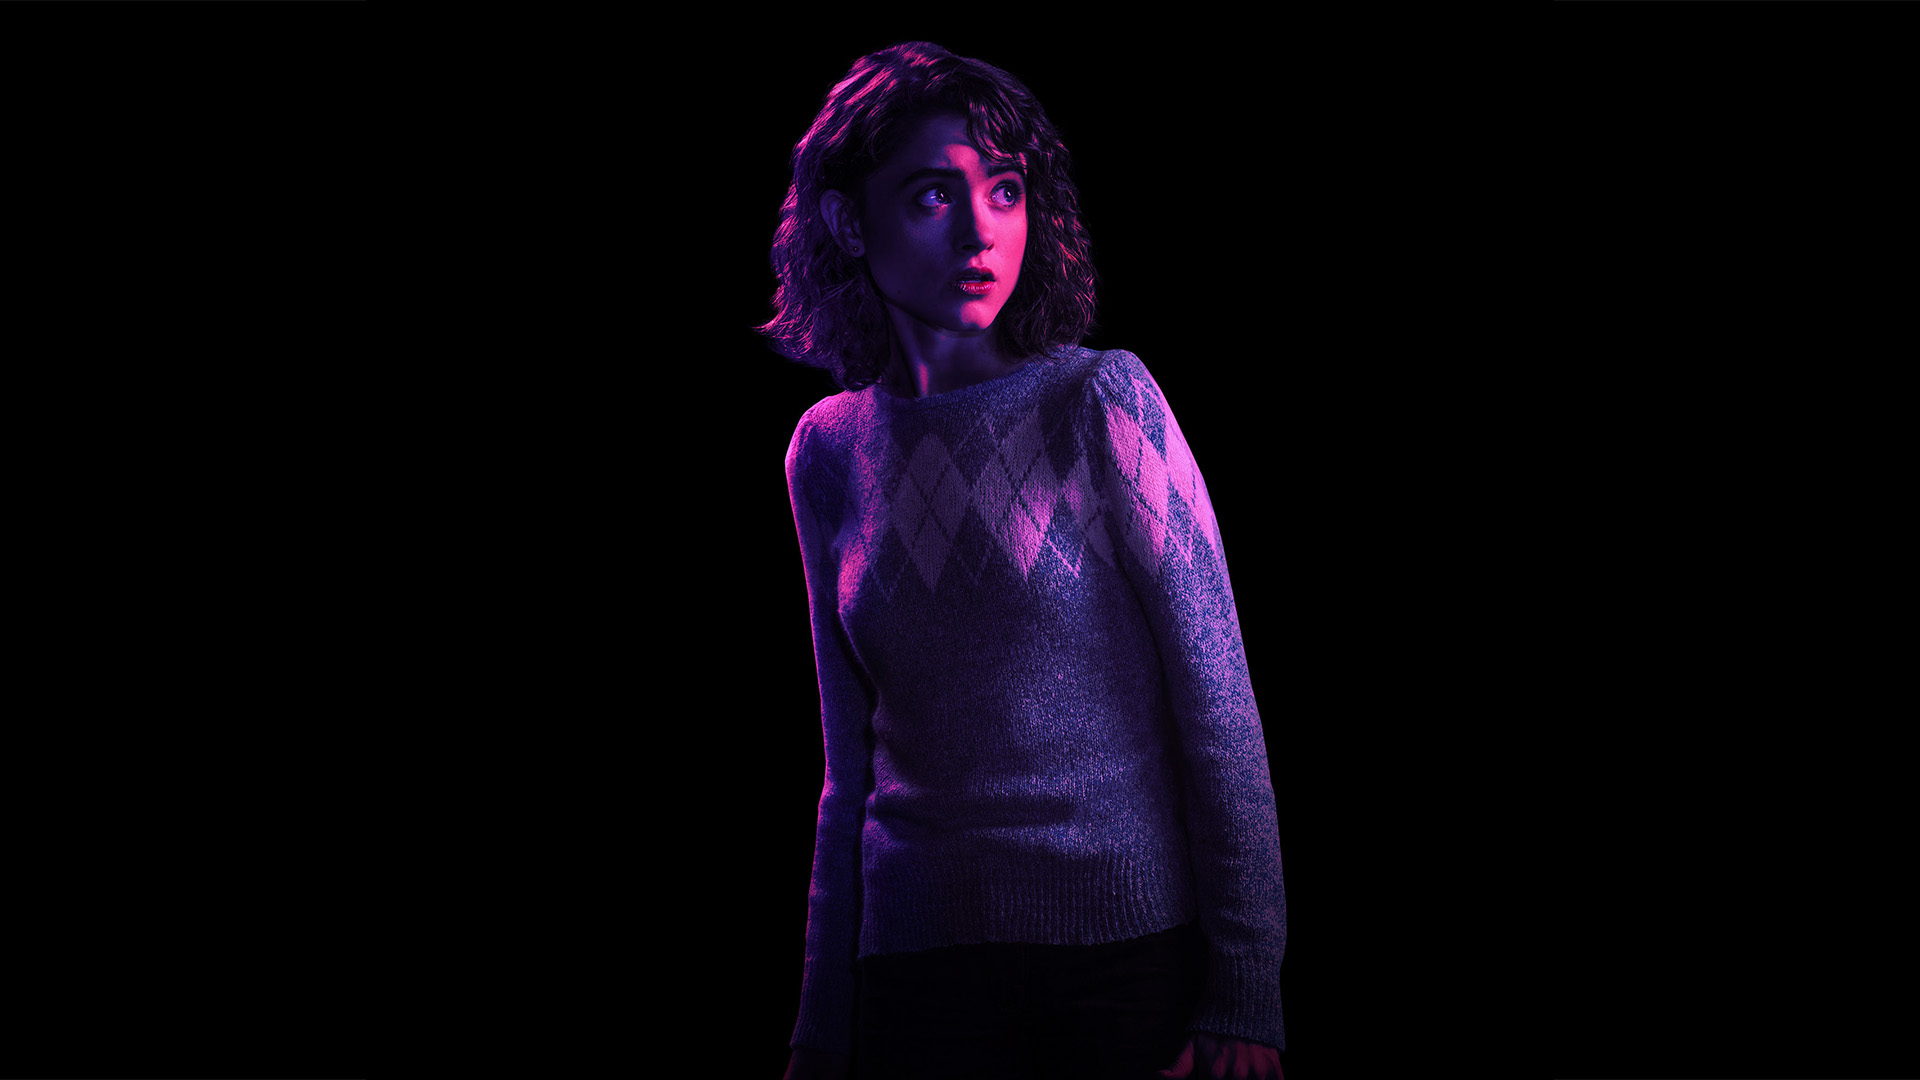 Stranger Things Wallpapers, Pictures, Images